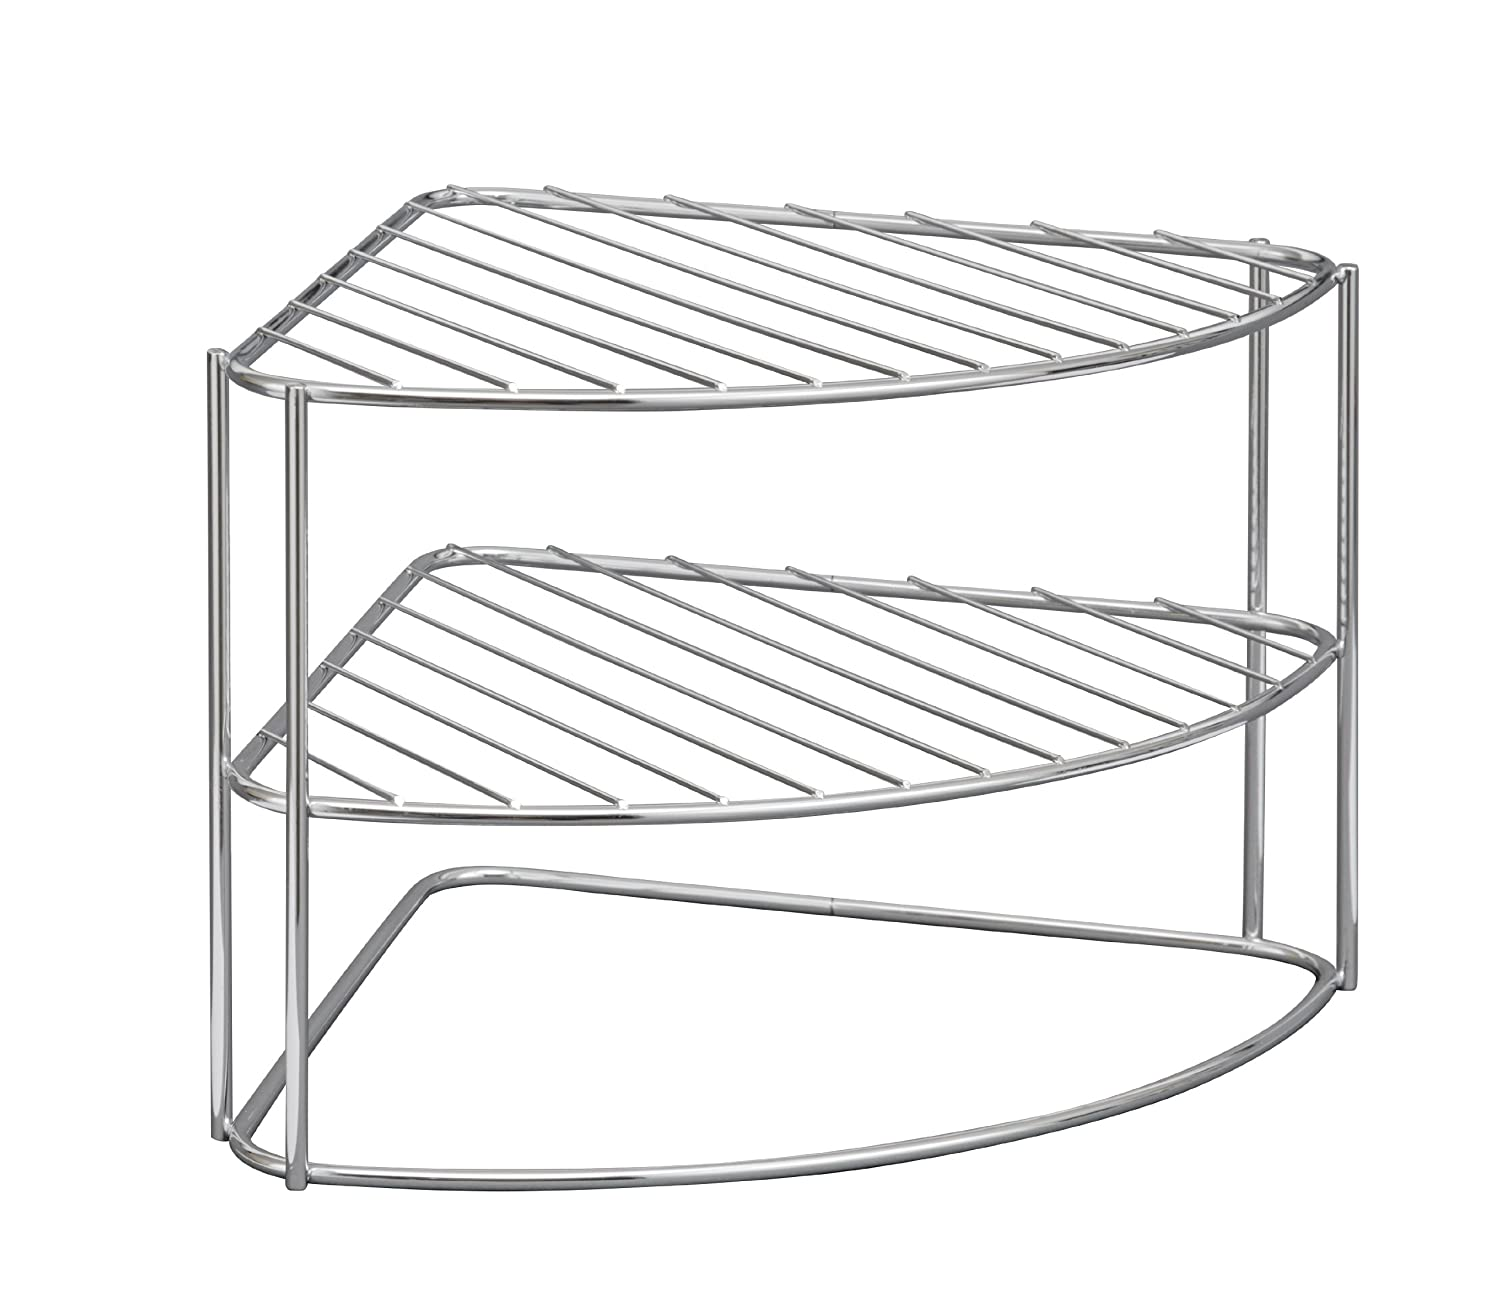 ClosetMaid Chrome Corner Dish or Plate Rack 58220 Amazon.co.uk Kitchen \u0026 Home  sc 1 st  Amazon UK & ClosetMaid Chrome Corner Dish or Plate Rack 58220: Amazon.co.uk ...